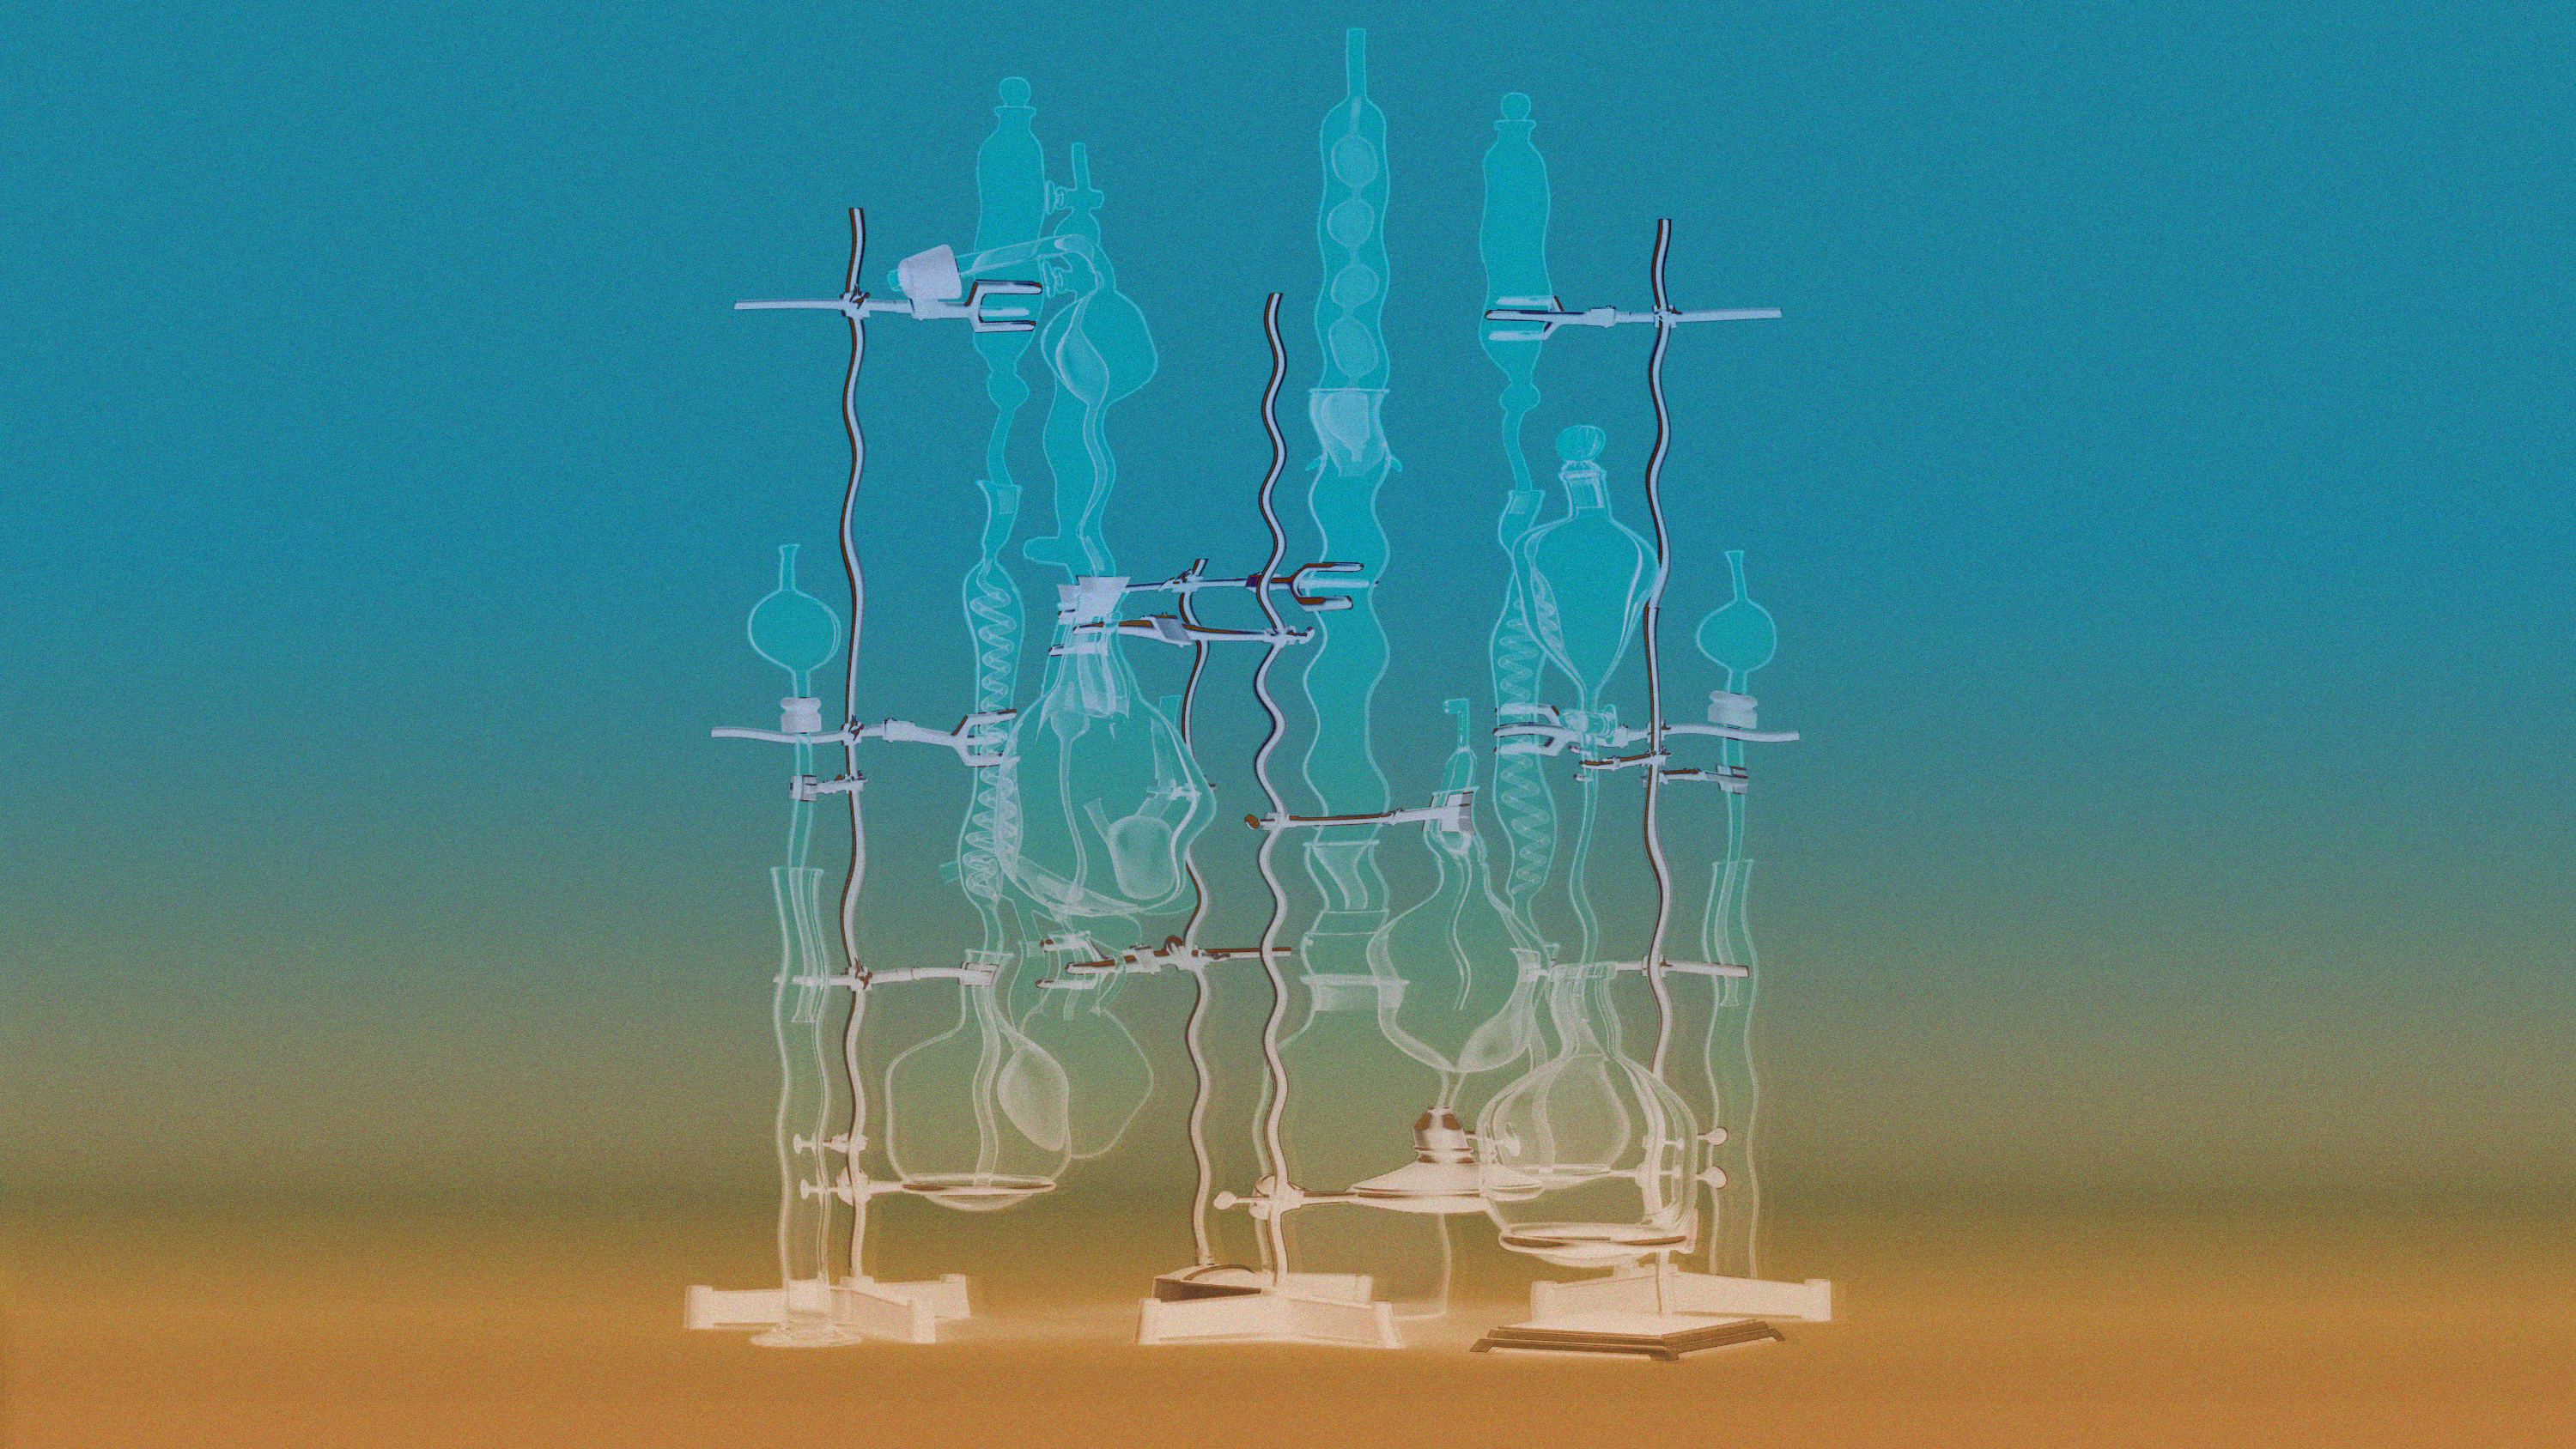 conceptual illustration showing a mirage of lab equipment